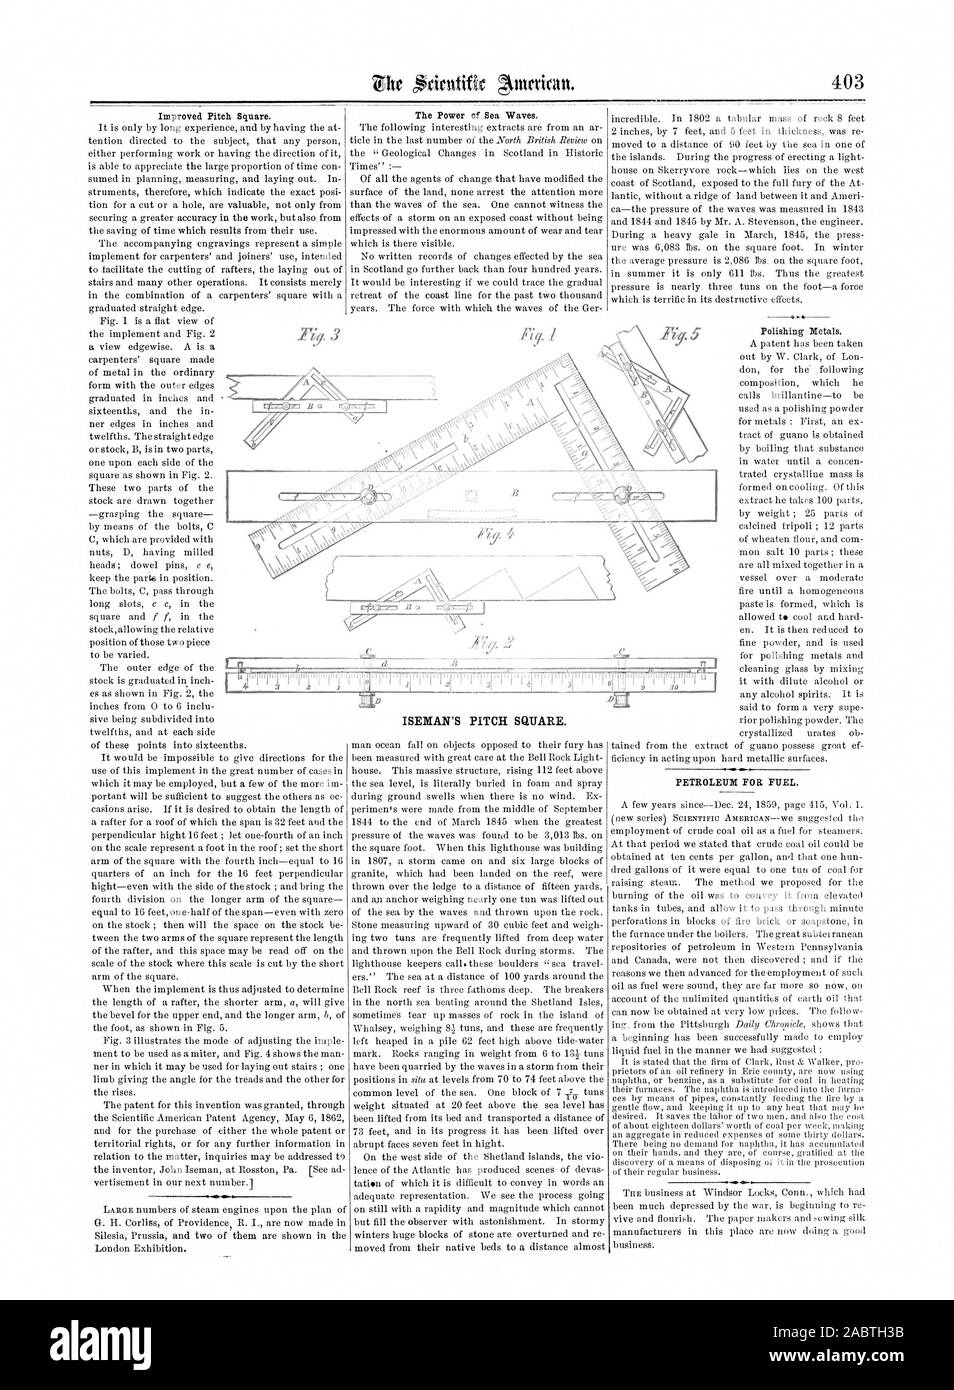 Improved Pitch Square. The Power of Sea Waves. PETROLEUM FOR FUEL., scientific american, 1862-06-28 Stock Photo